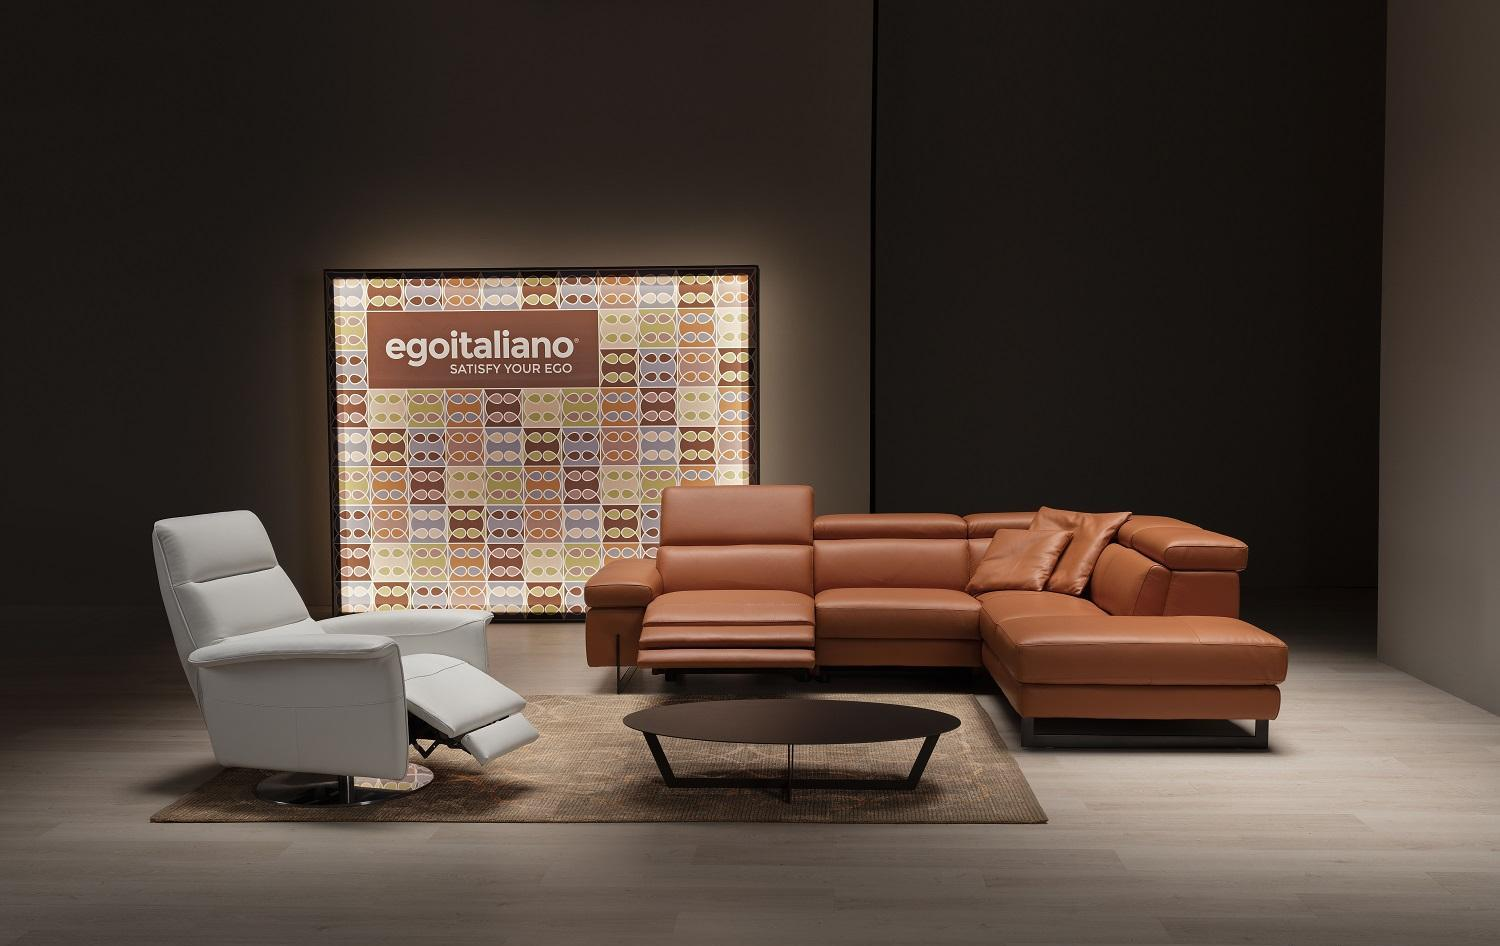 Valuable Leather - Ego Italiano is known for its special treatment of leather and its implementation on the furniture